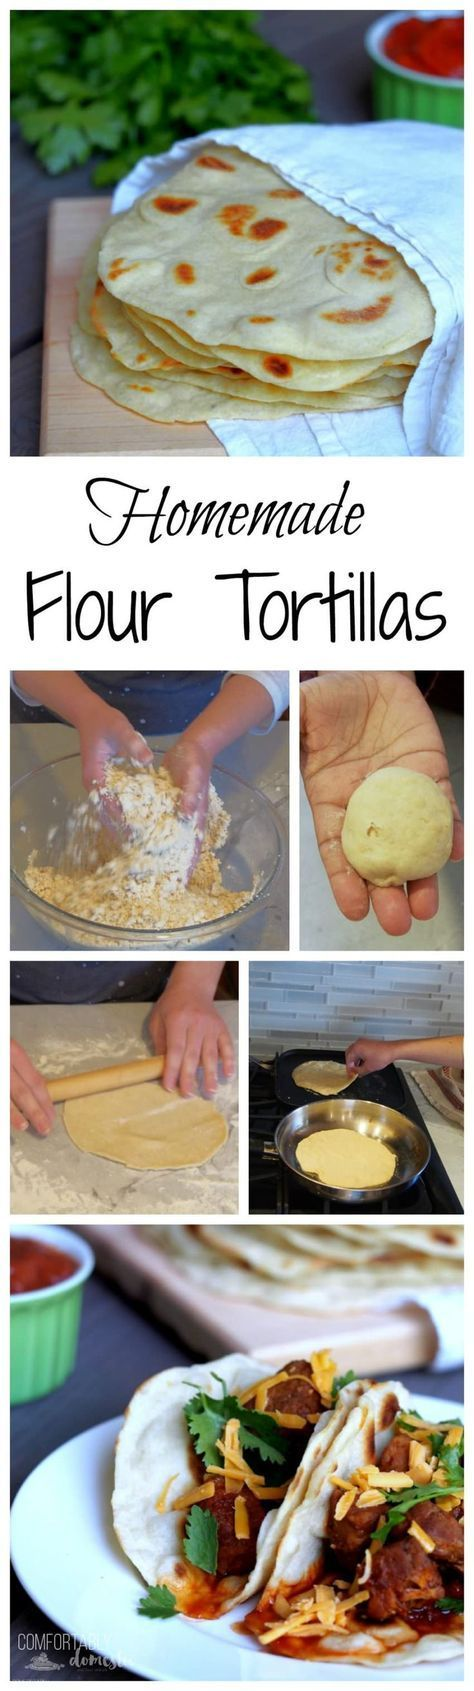 How-to-Make-the-Best-Authentic-Homemade-Flour-Tortillas-with-step-by-step-instructions